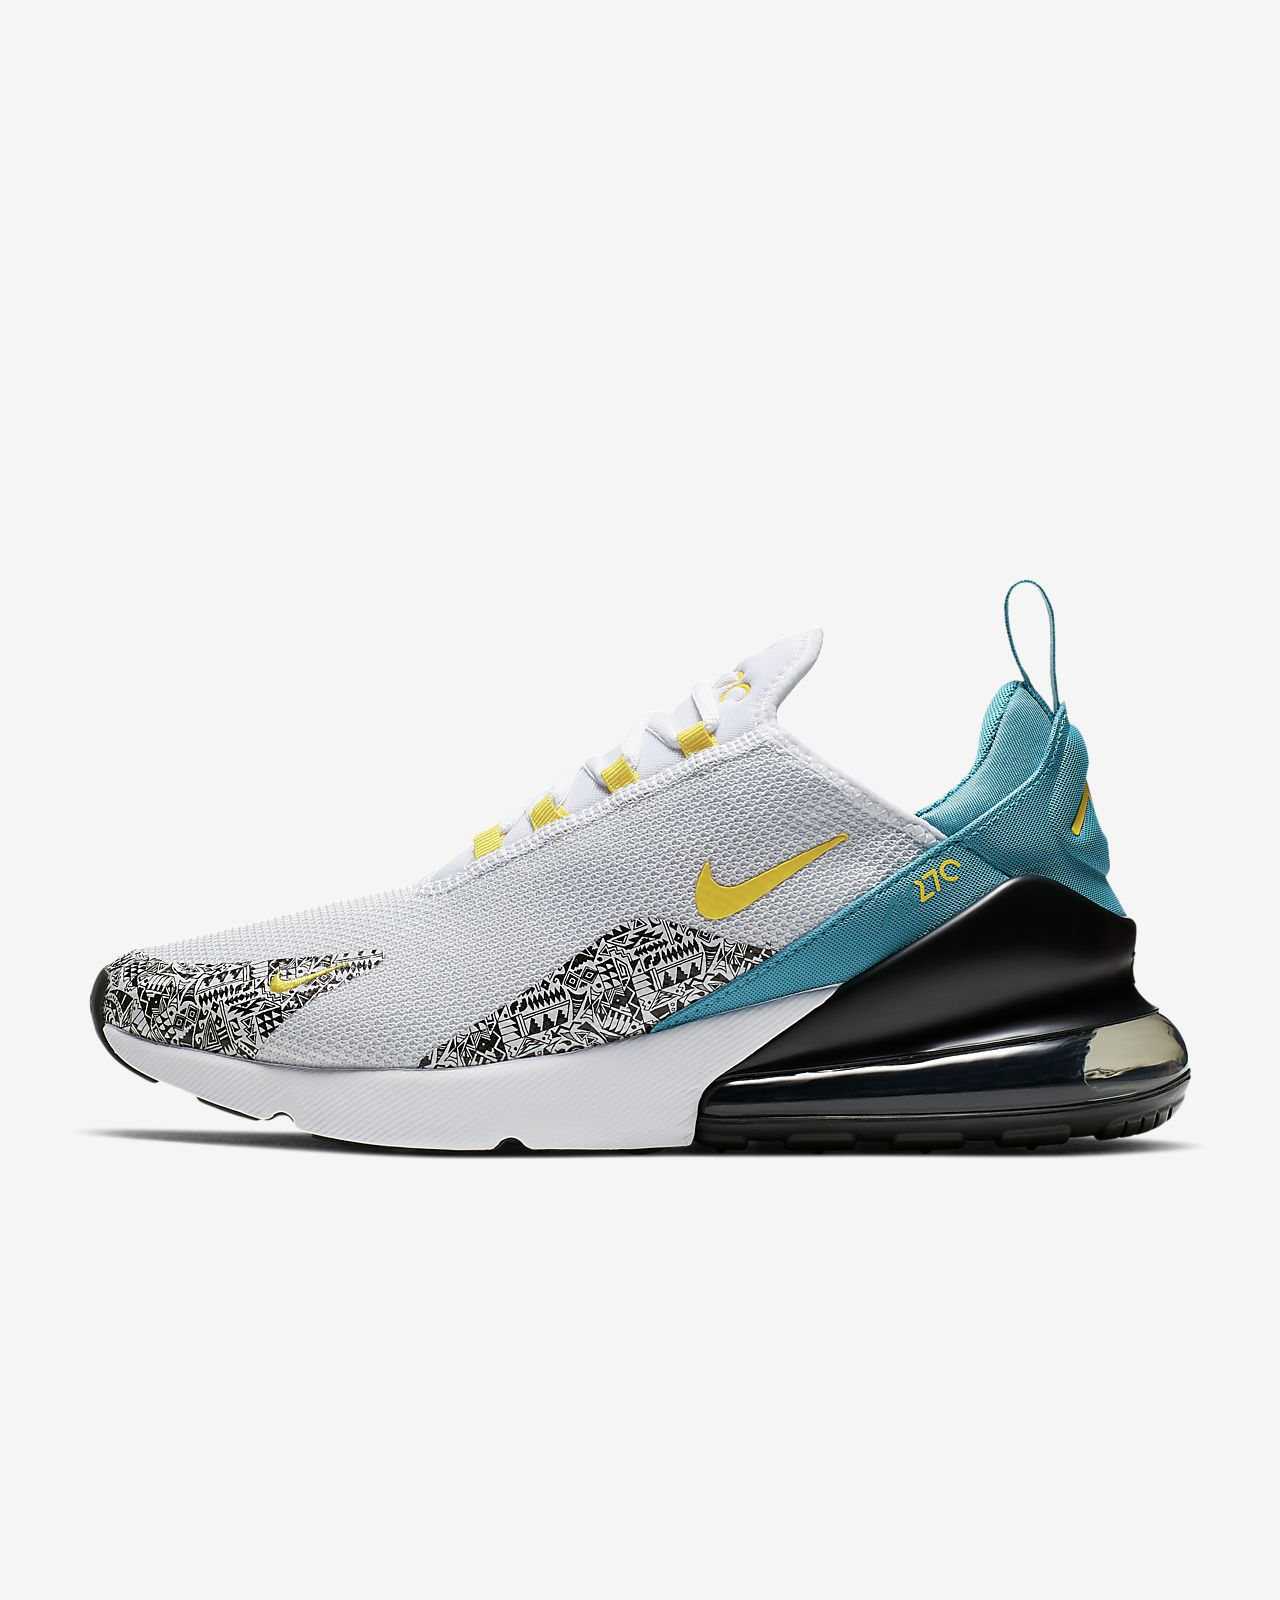 Nike Air Max 270 N7 Men's Shoe